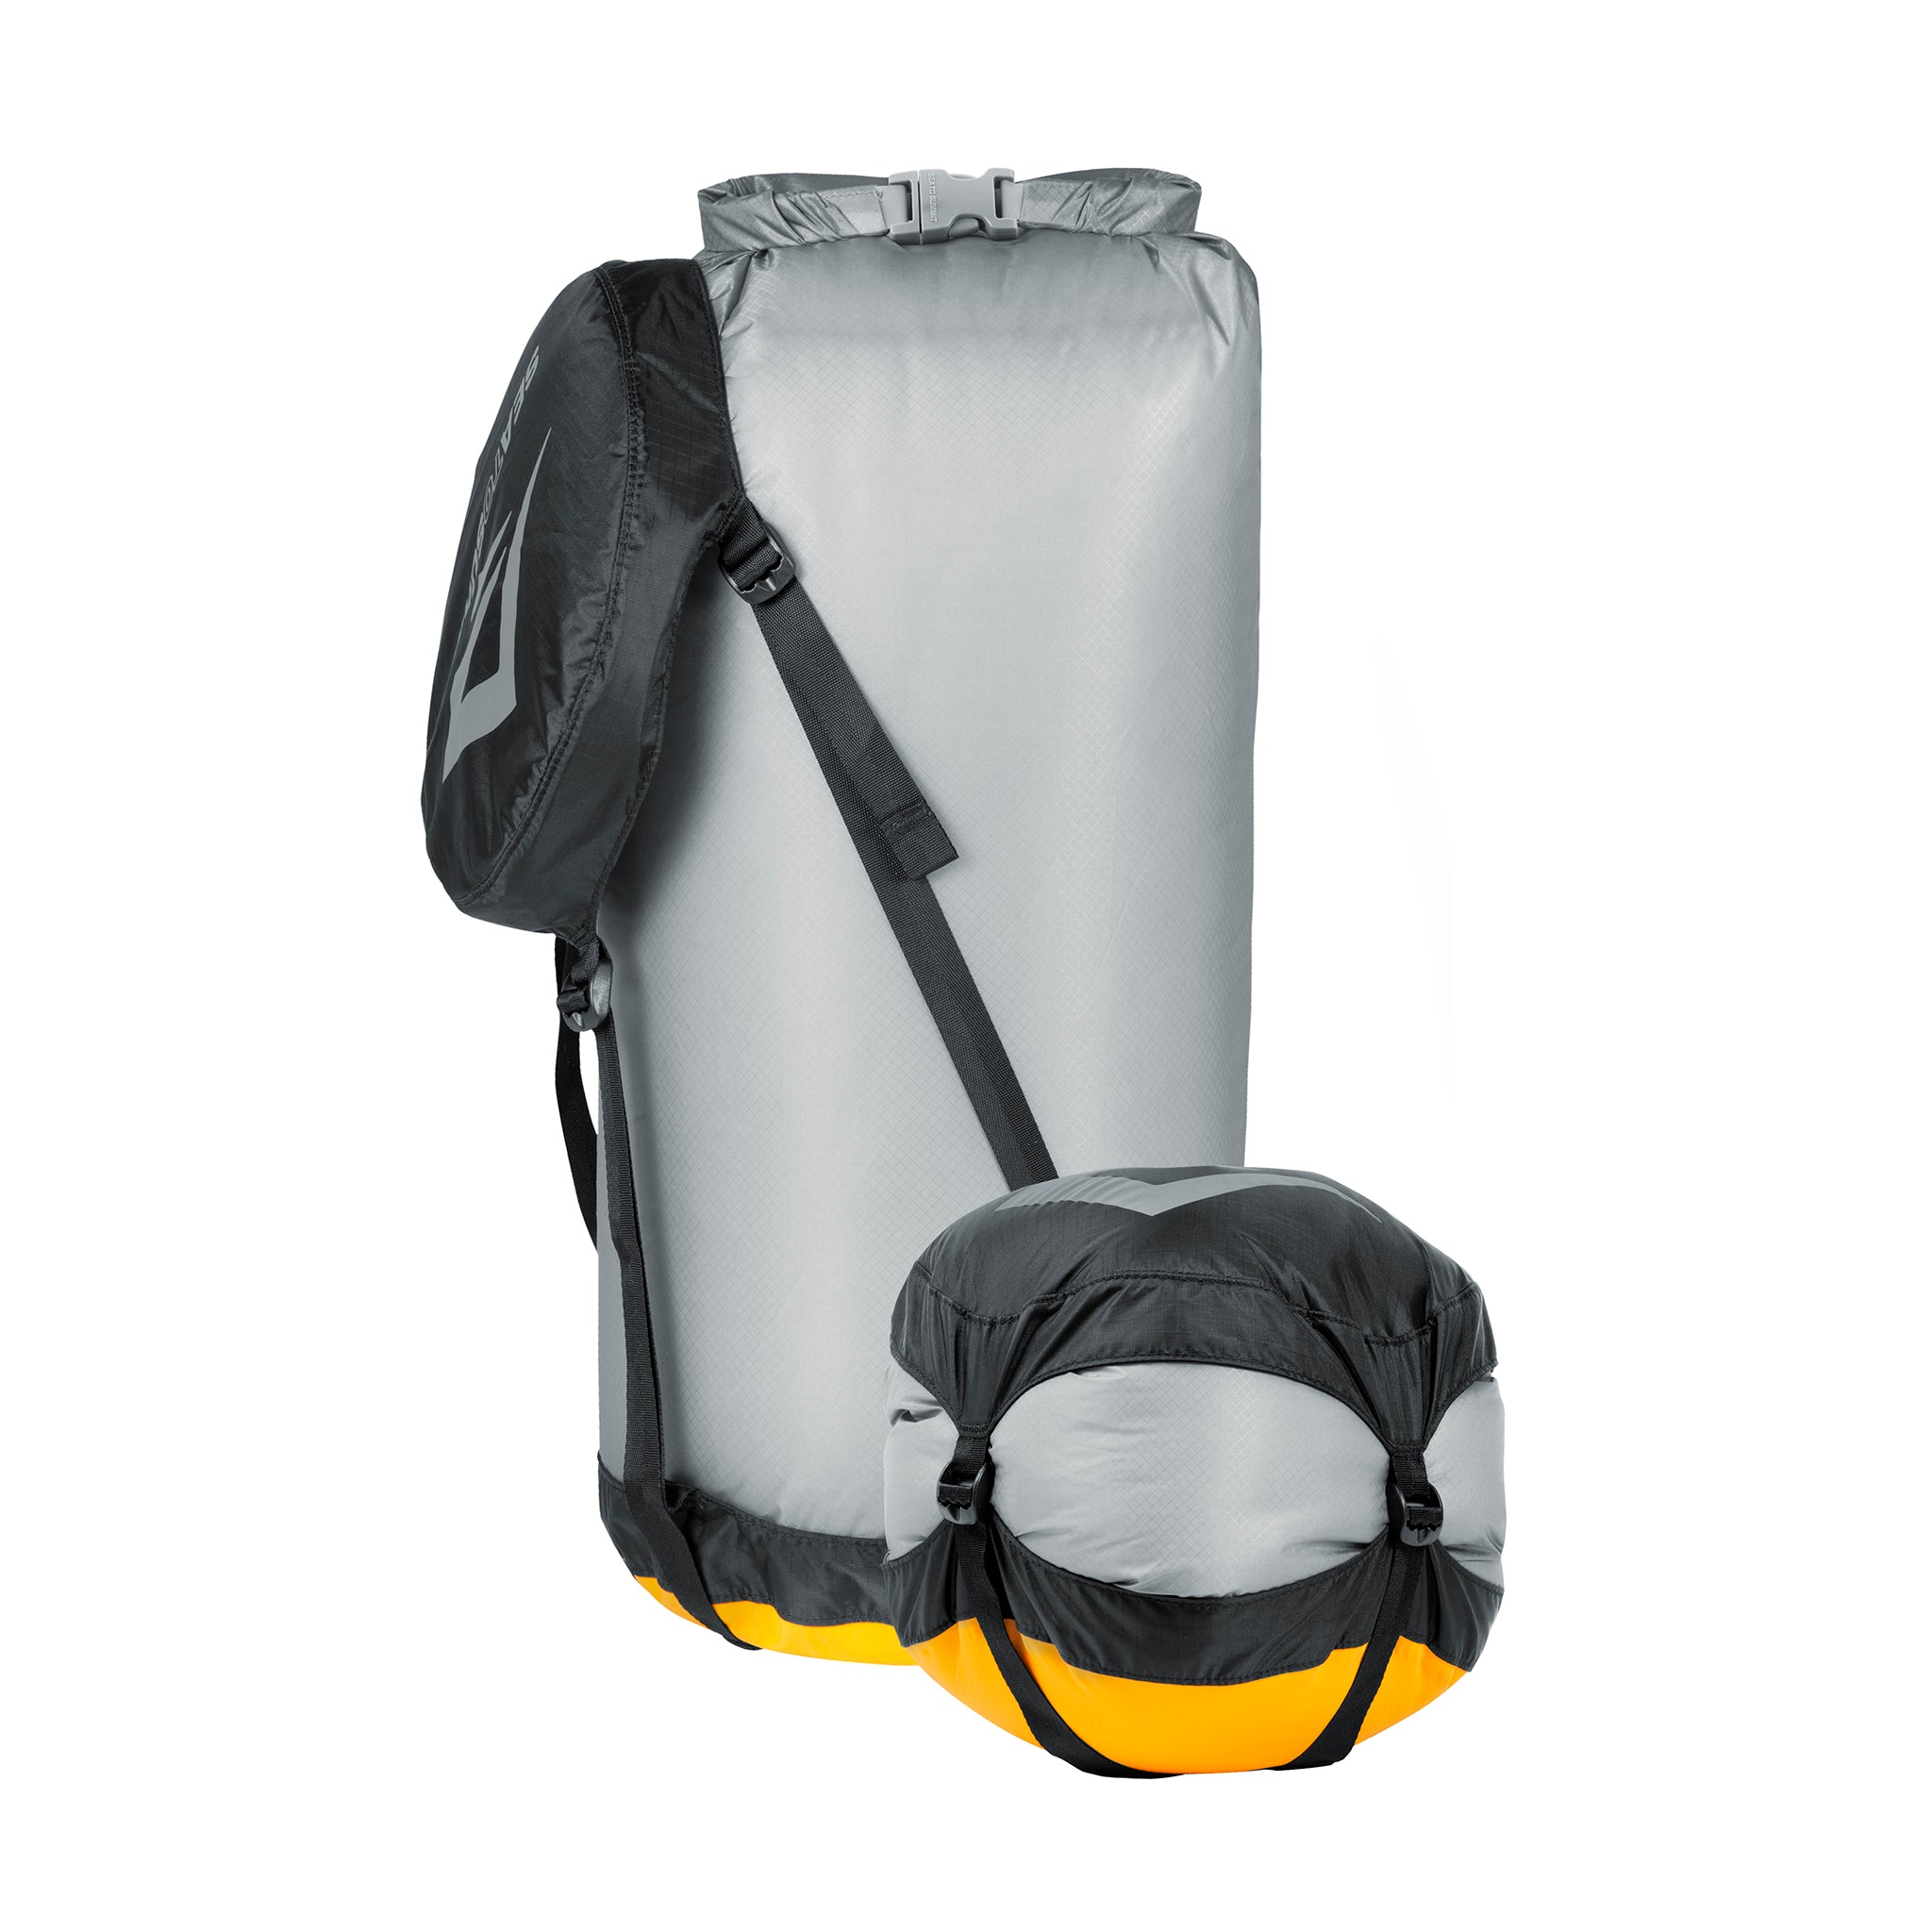 Ultra-Sil_eVent_Compression_Waterproof Dry Bag___14_Liter